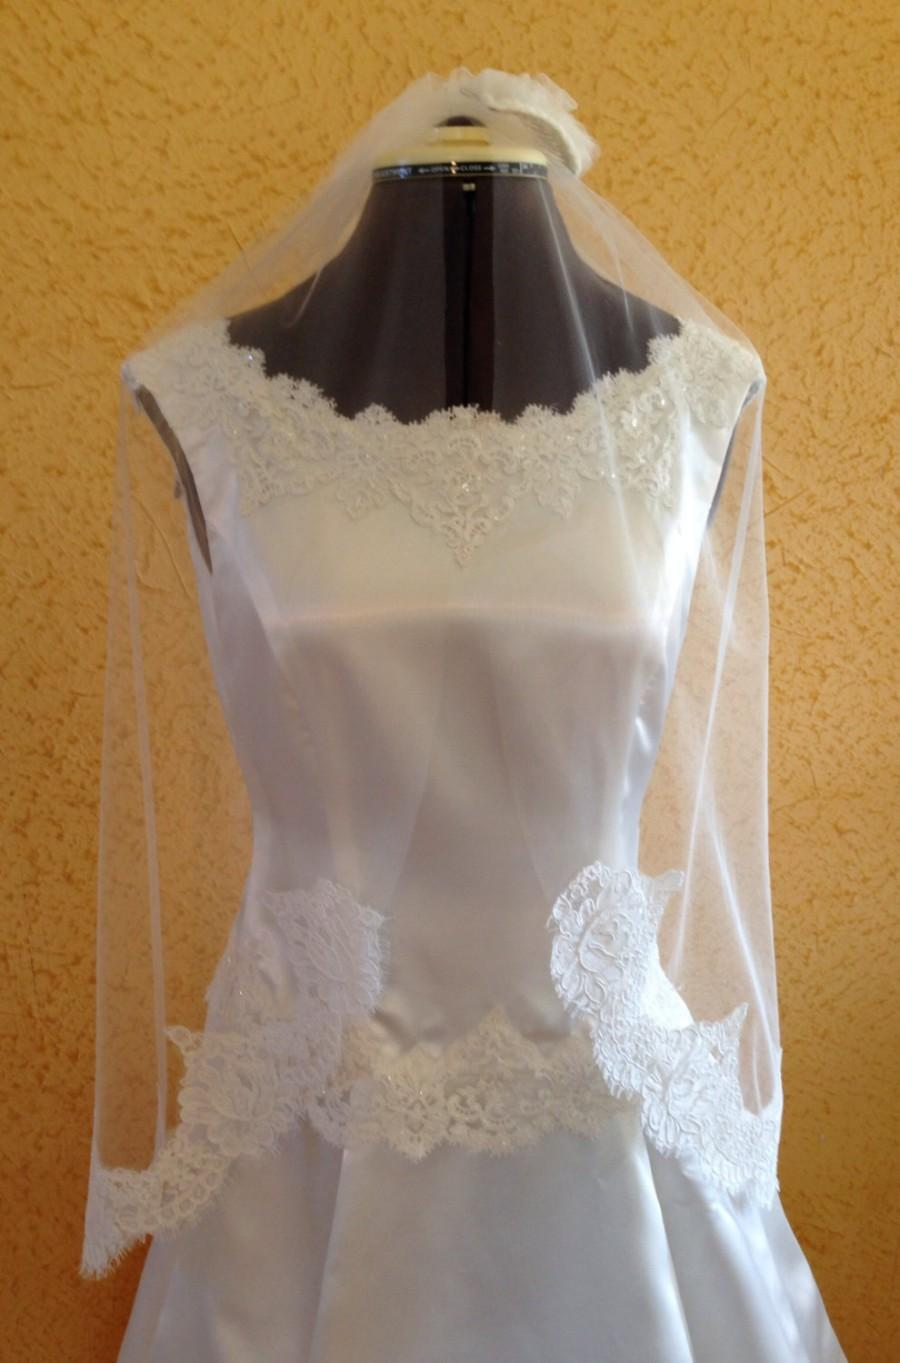 Свадьба - Alencon lace veil with original Alencon lace on the bottom only, lace veil in Classic French style gathered top and raw edge around the face